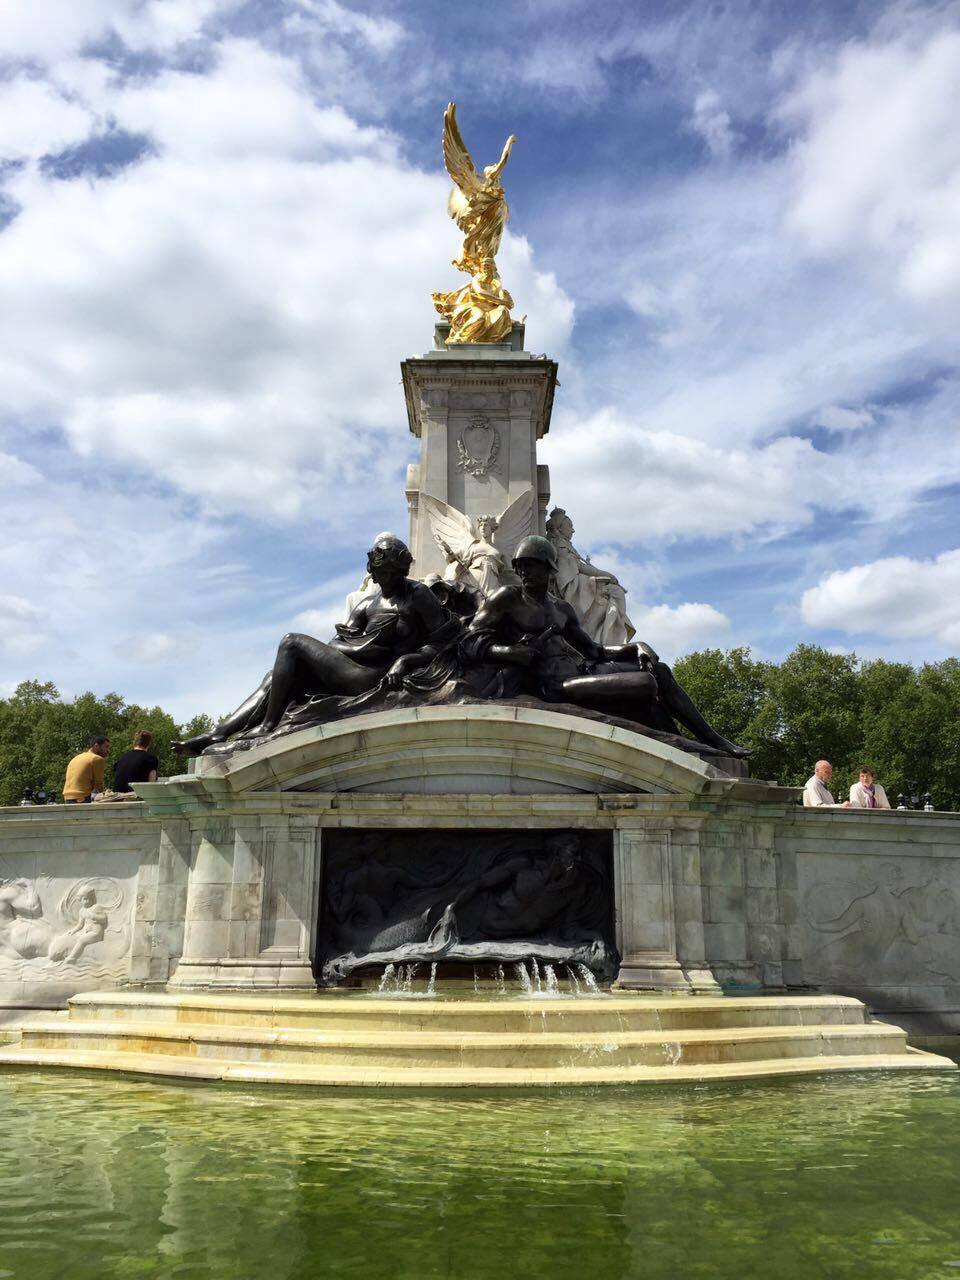 A monument to Queen Victoria